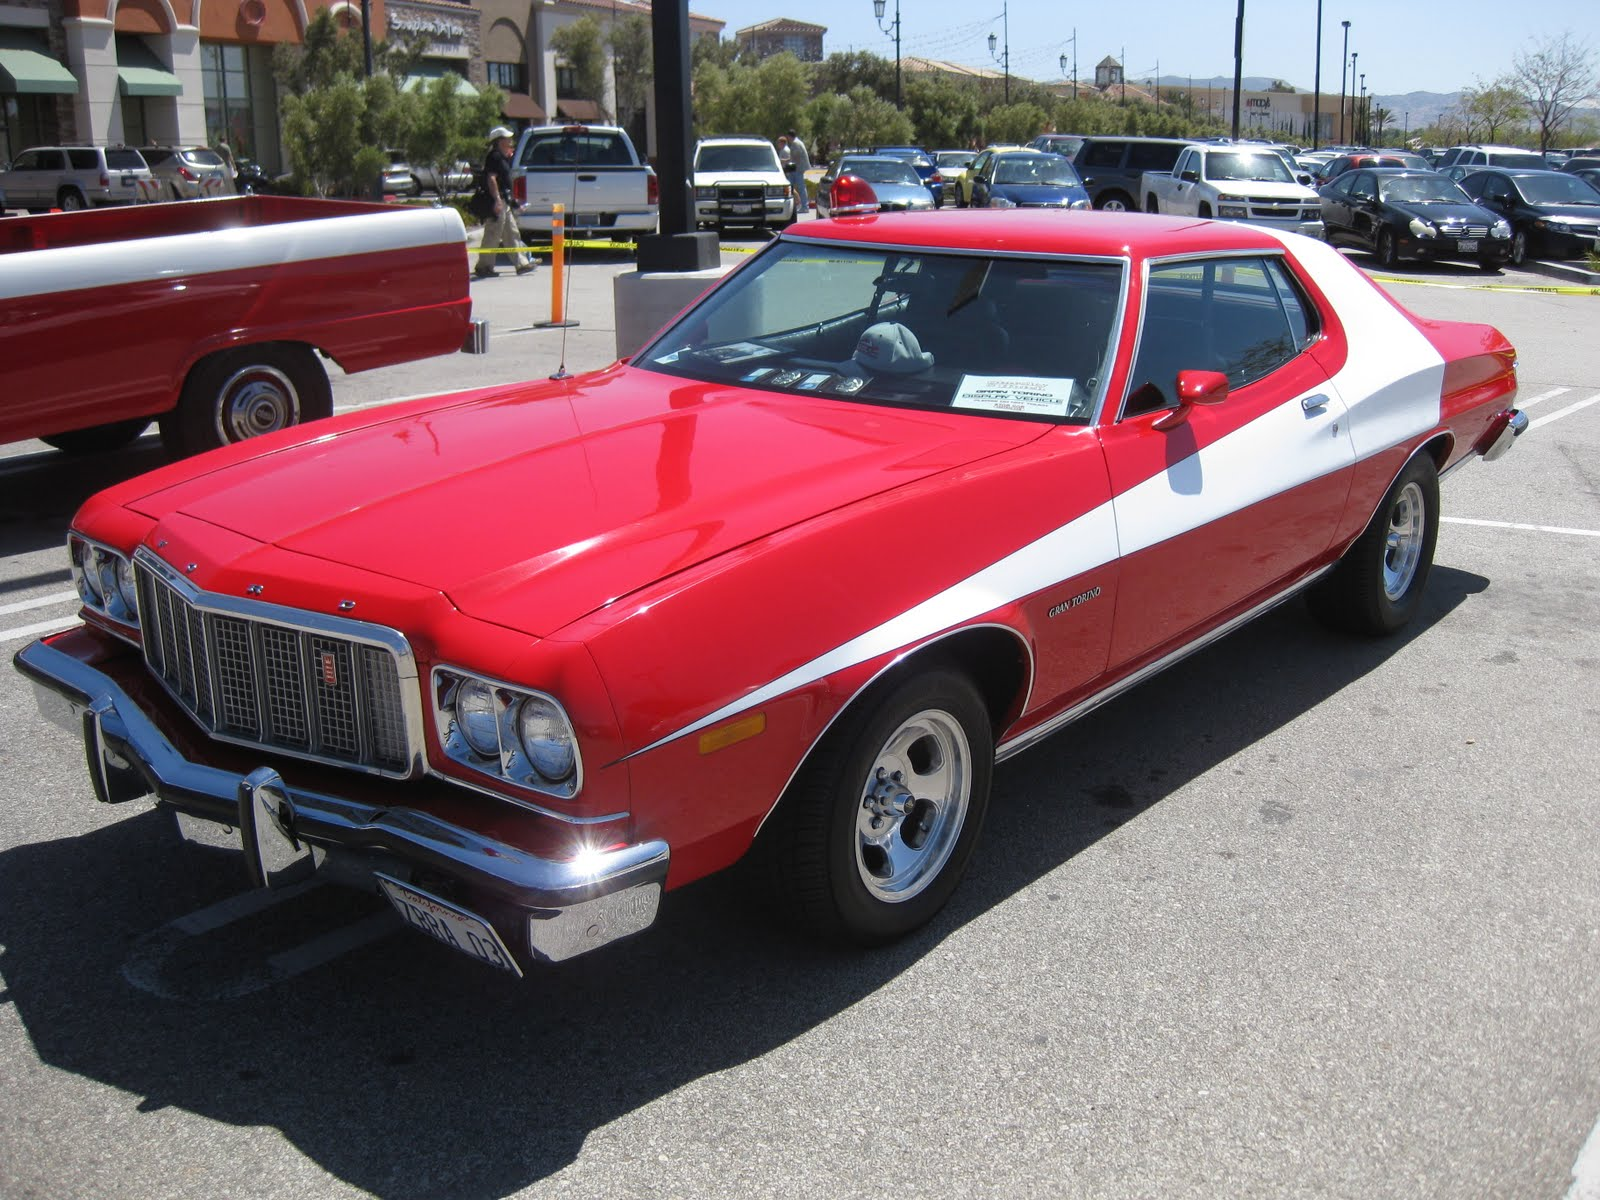 Ford Torino 1975 photo - 10